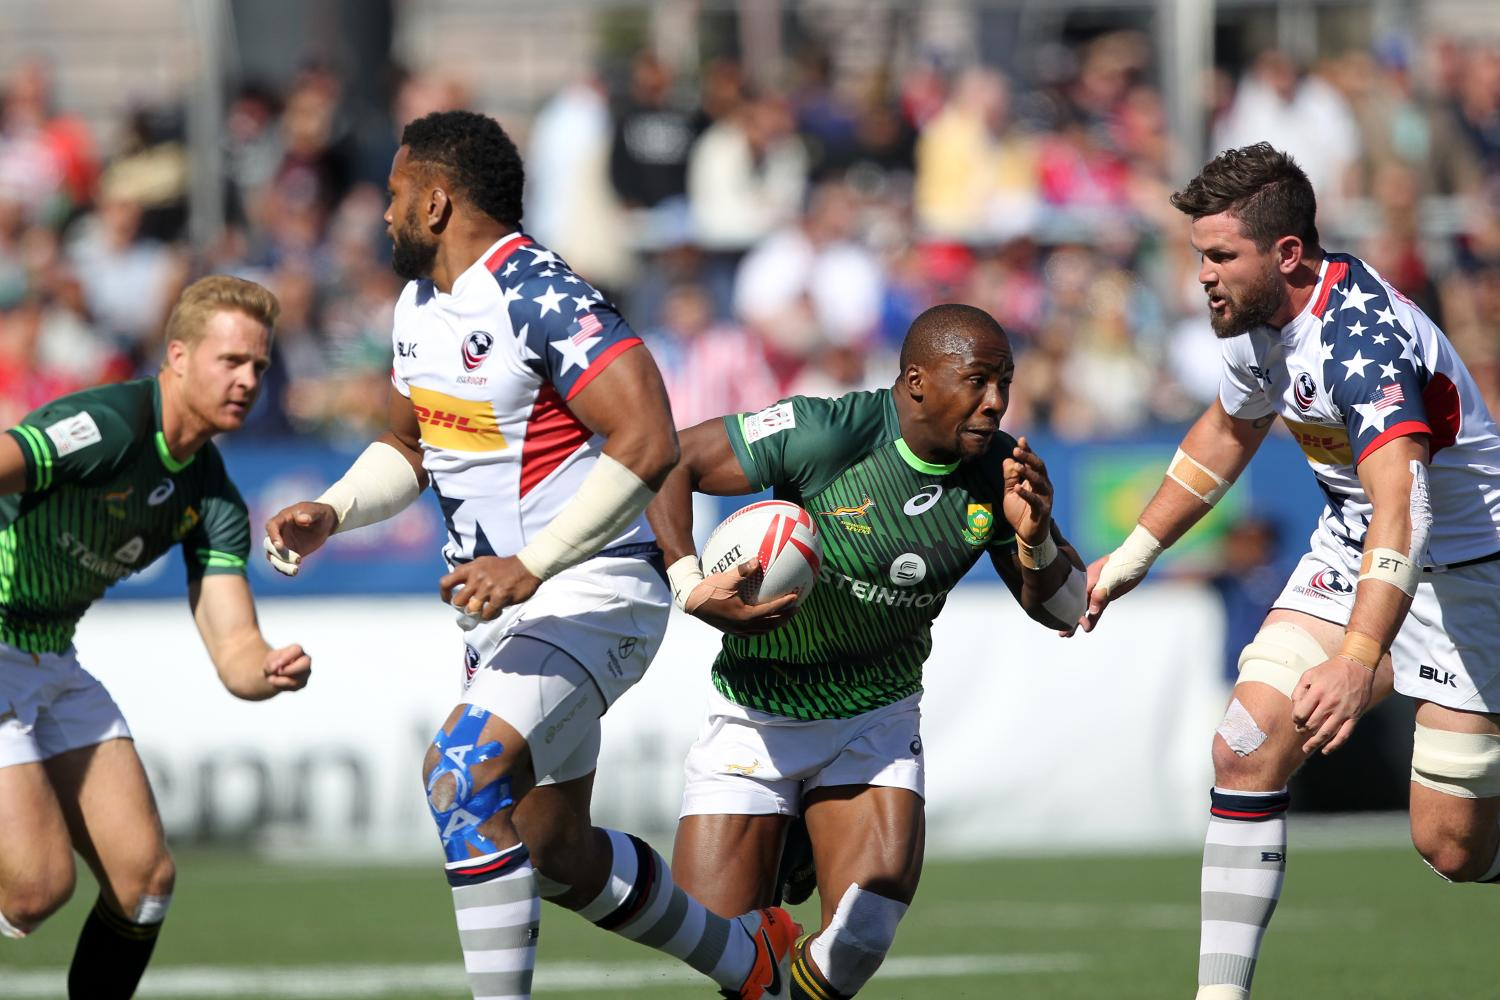 HSBC USA Sevens - Men's